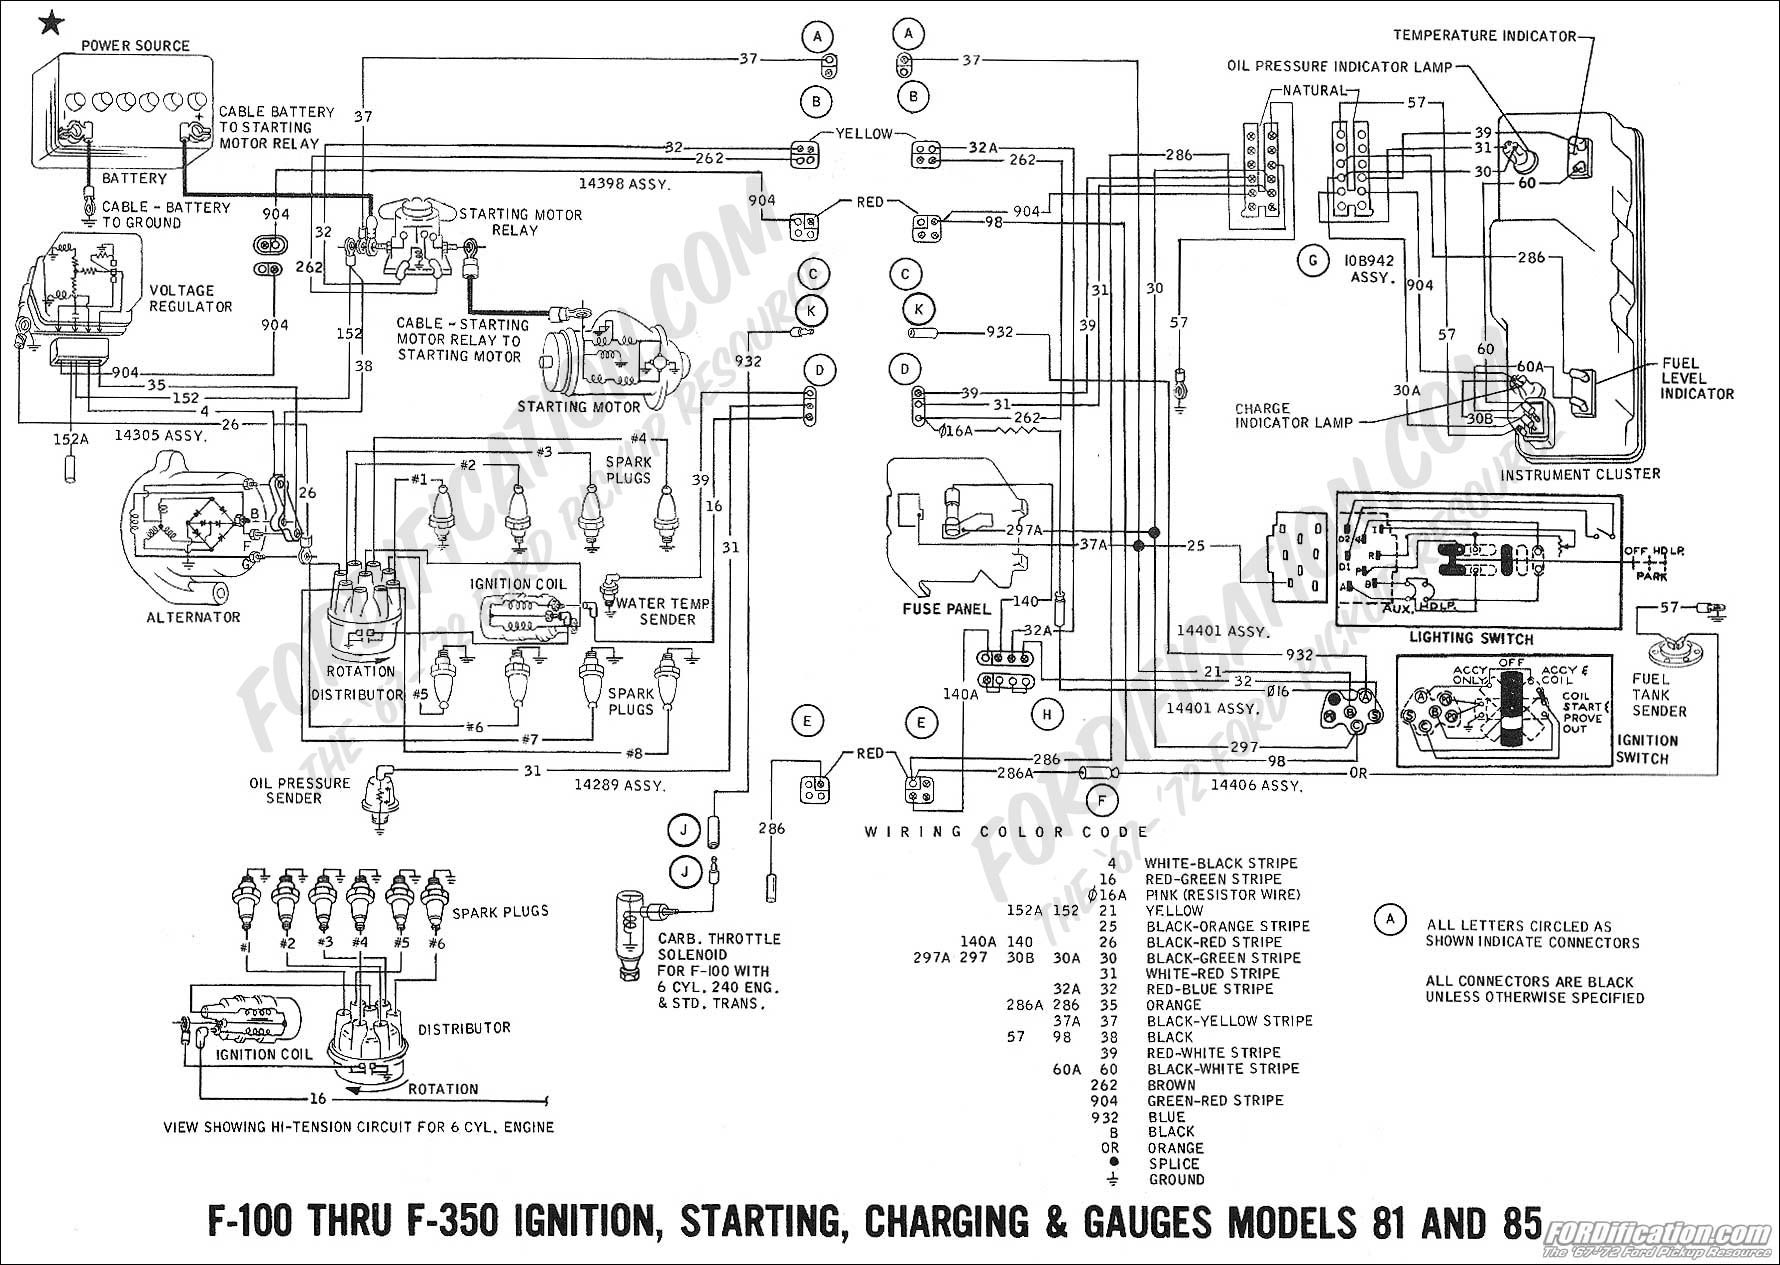 85 Ford F150 Charging System Diagram | Wiring Diagram  Ford F Wiring Diagrams on 85 ford f150 suspension, 85 ford f150 engine, 85 ford f150 timing, 85 ford f150 seats, 85 ford f150 door, 85 ford f150 speaker, 85 ford f150 transmission, 85 ford f150 regulator, 85 ford f150 radio, 85 ford f150 exhaust system, 85 ford f150 parts, 85 ford f150 carburetor, 85 ford f150 headlight, 85 ford f150 brakes,